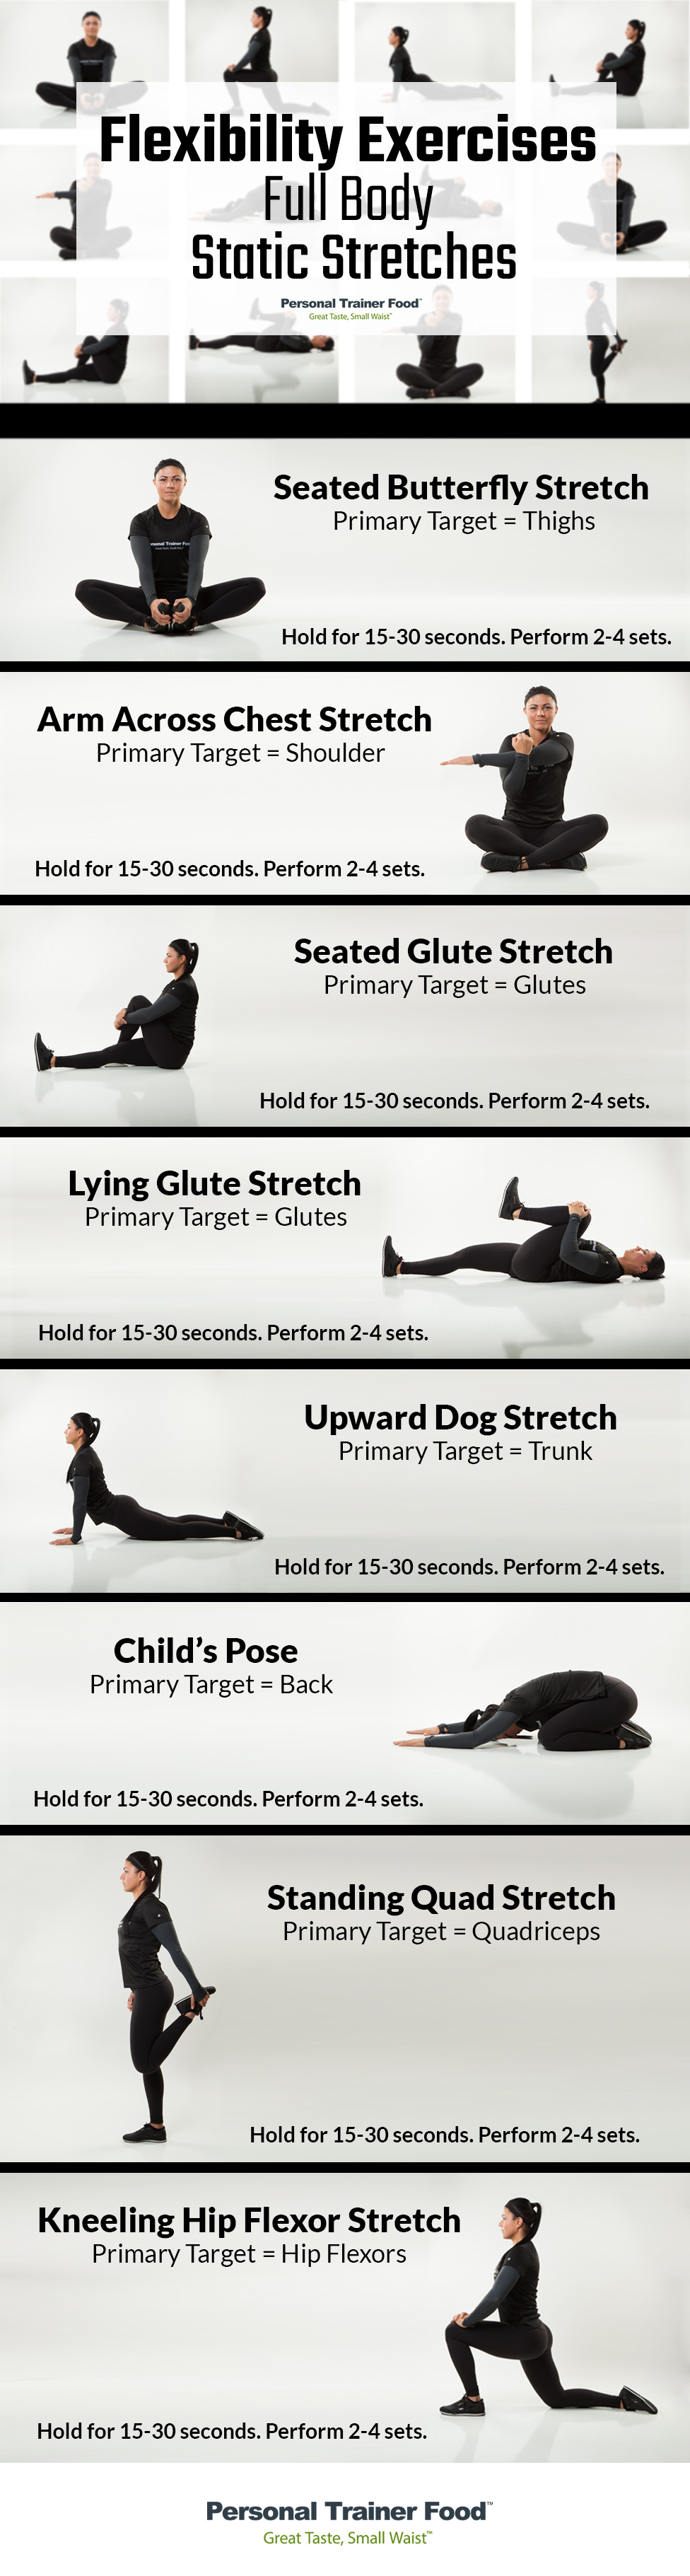 8 Full Body stretching routine you can do anywhere, anytime, step by step infographic from Personal Trainer Food.